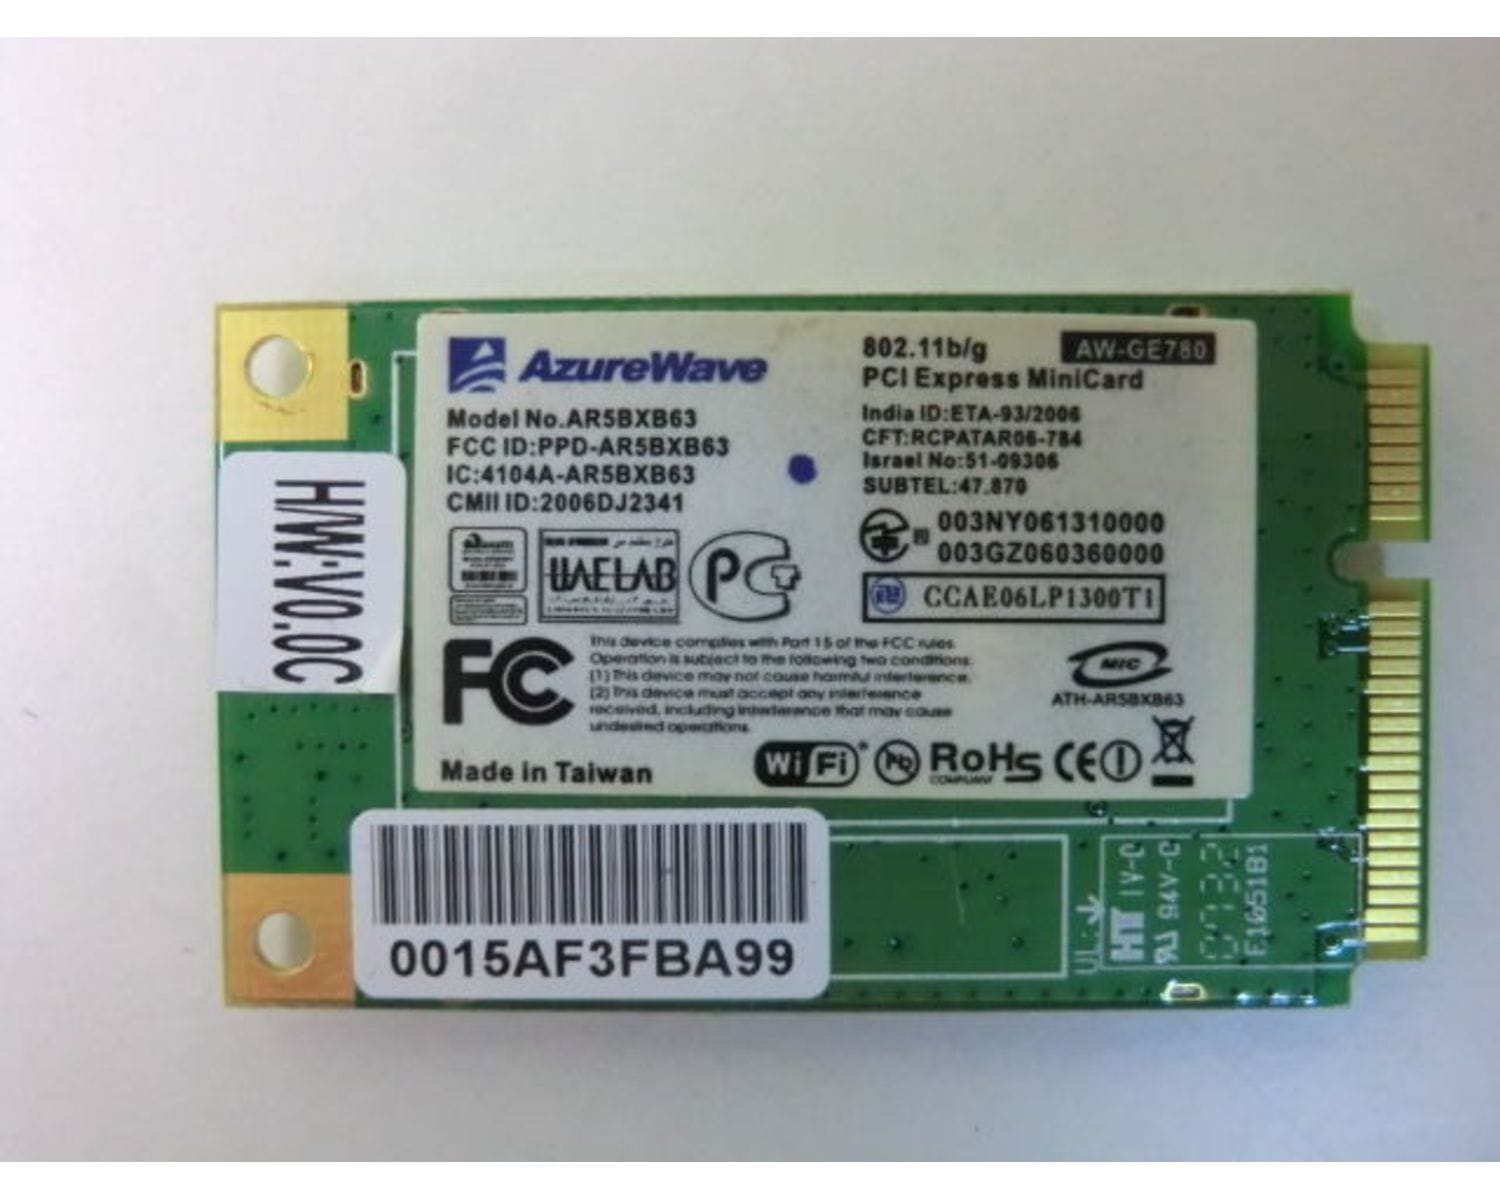 Asus A8D Mini PCI Wireless WiFi карта AzureWave